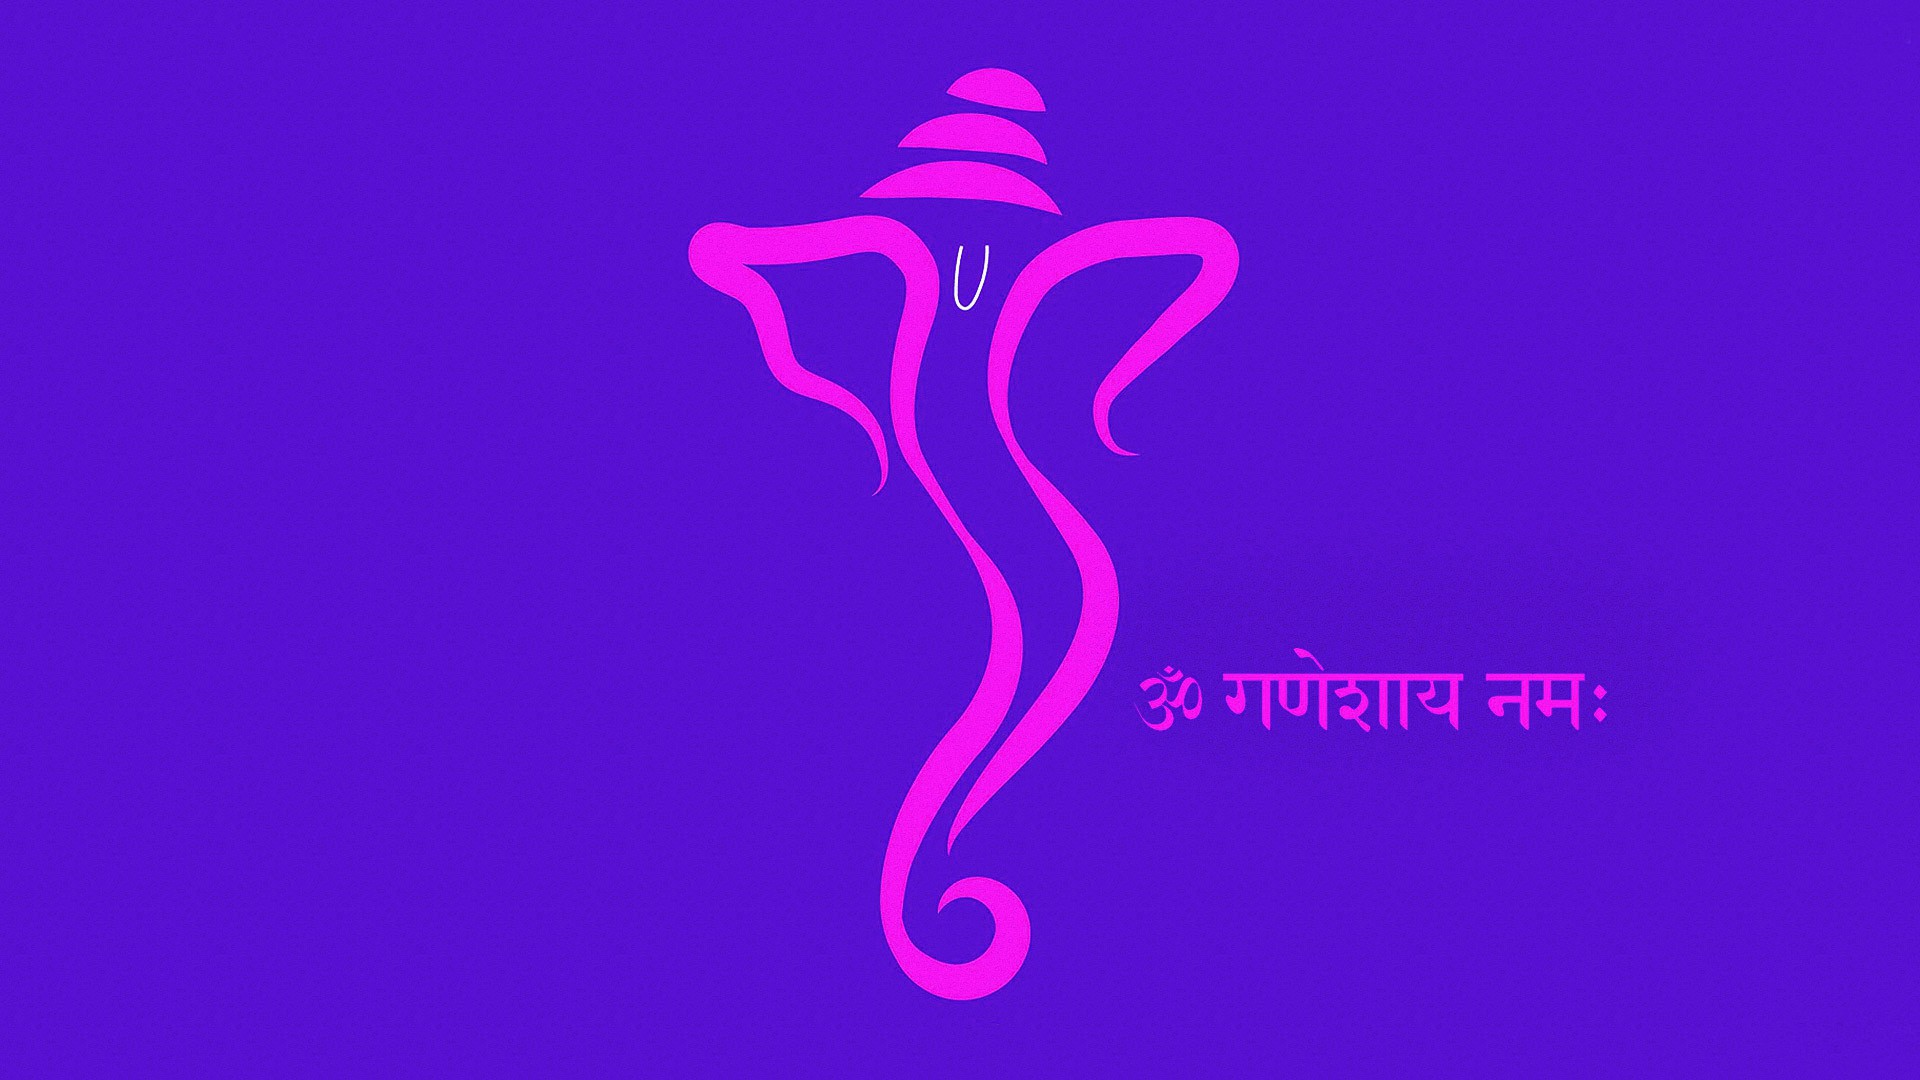 ganpati wallpaper download hd a· ganpati